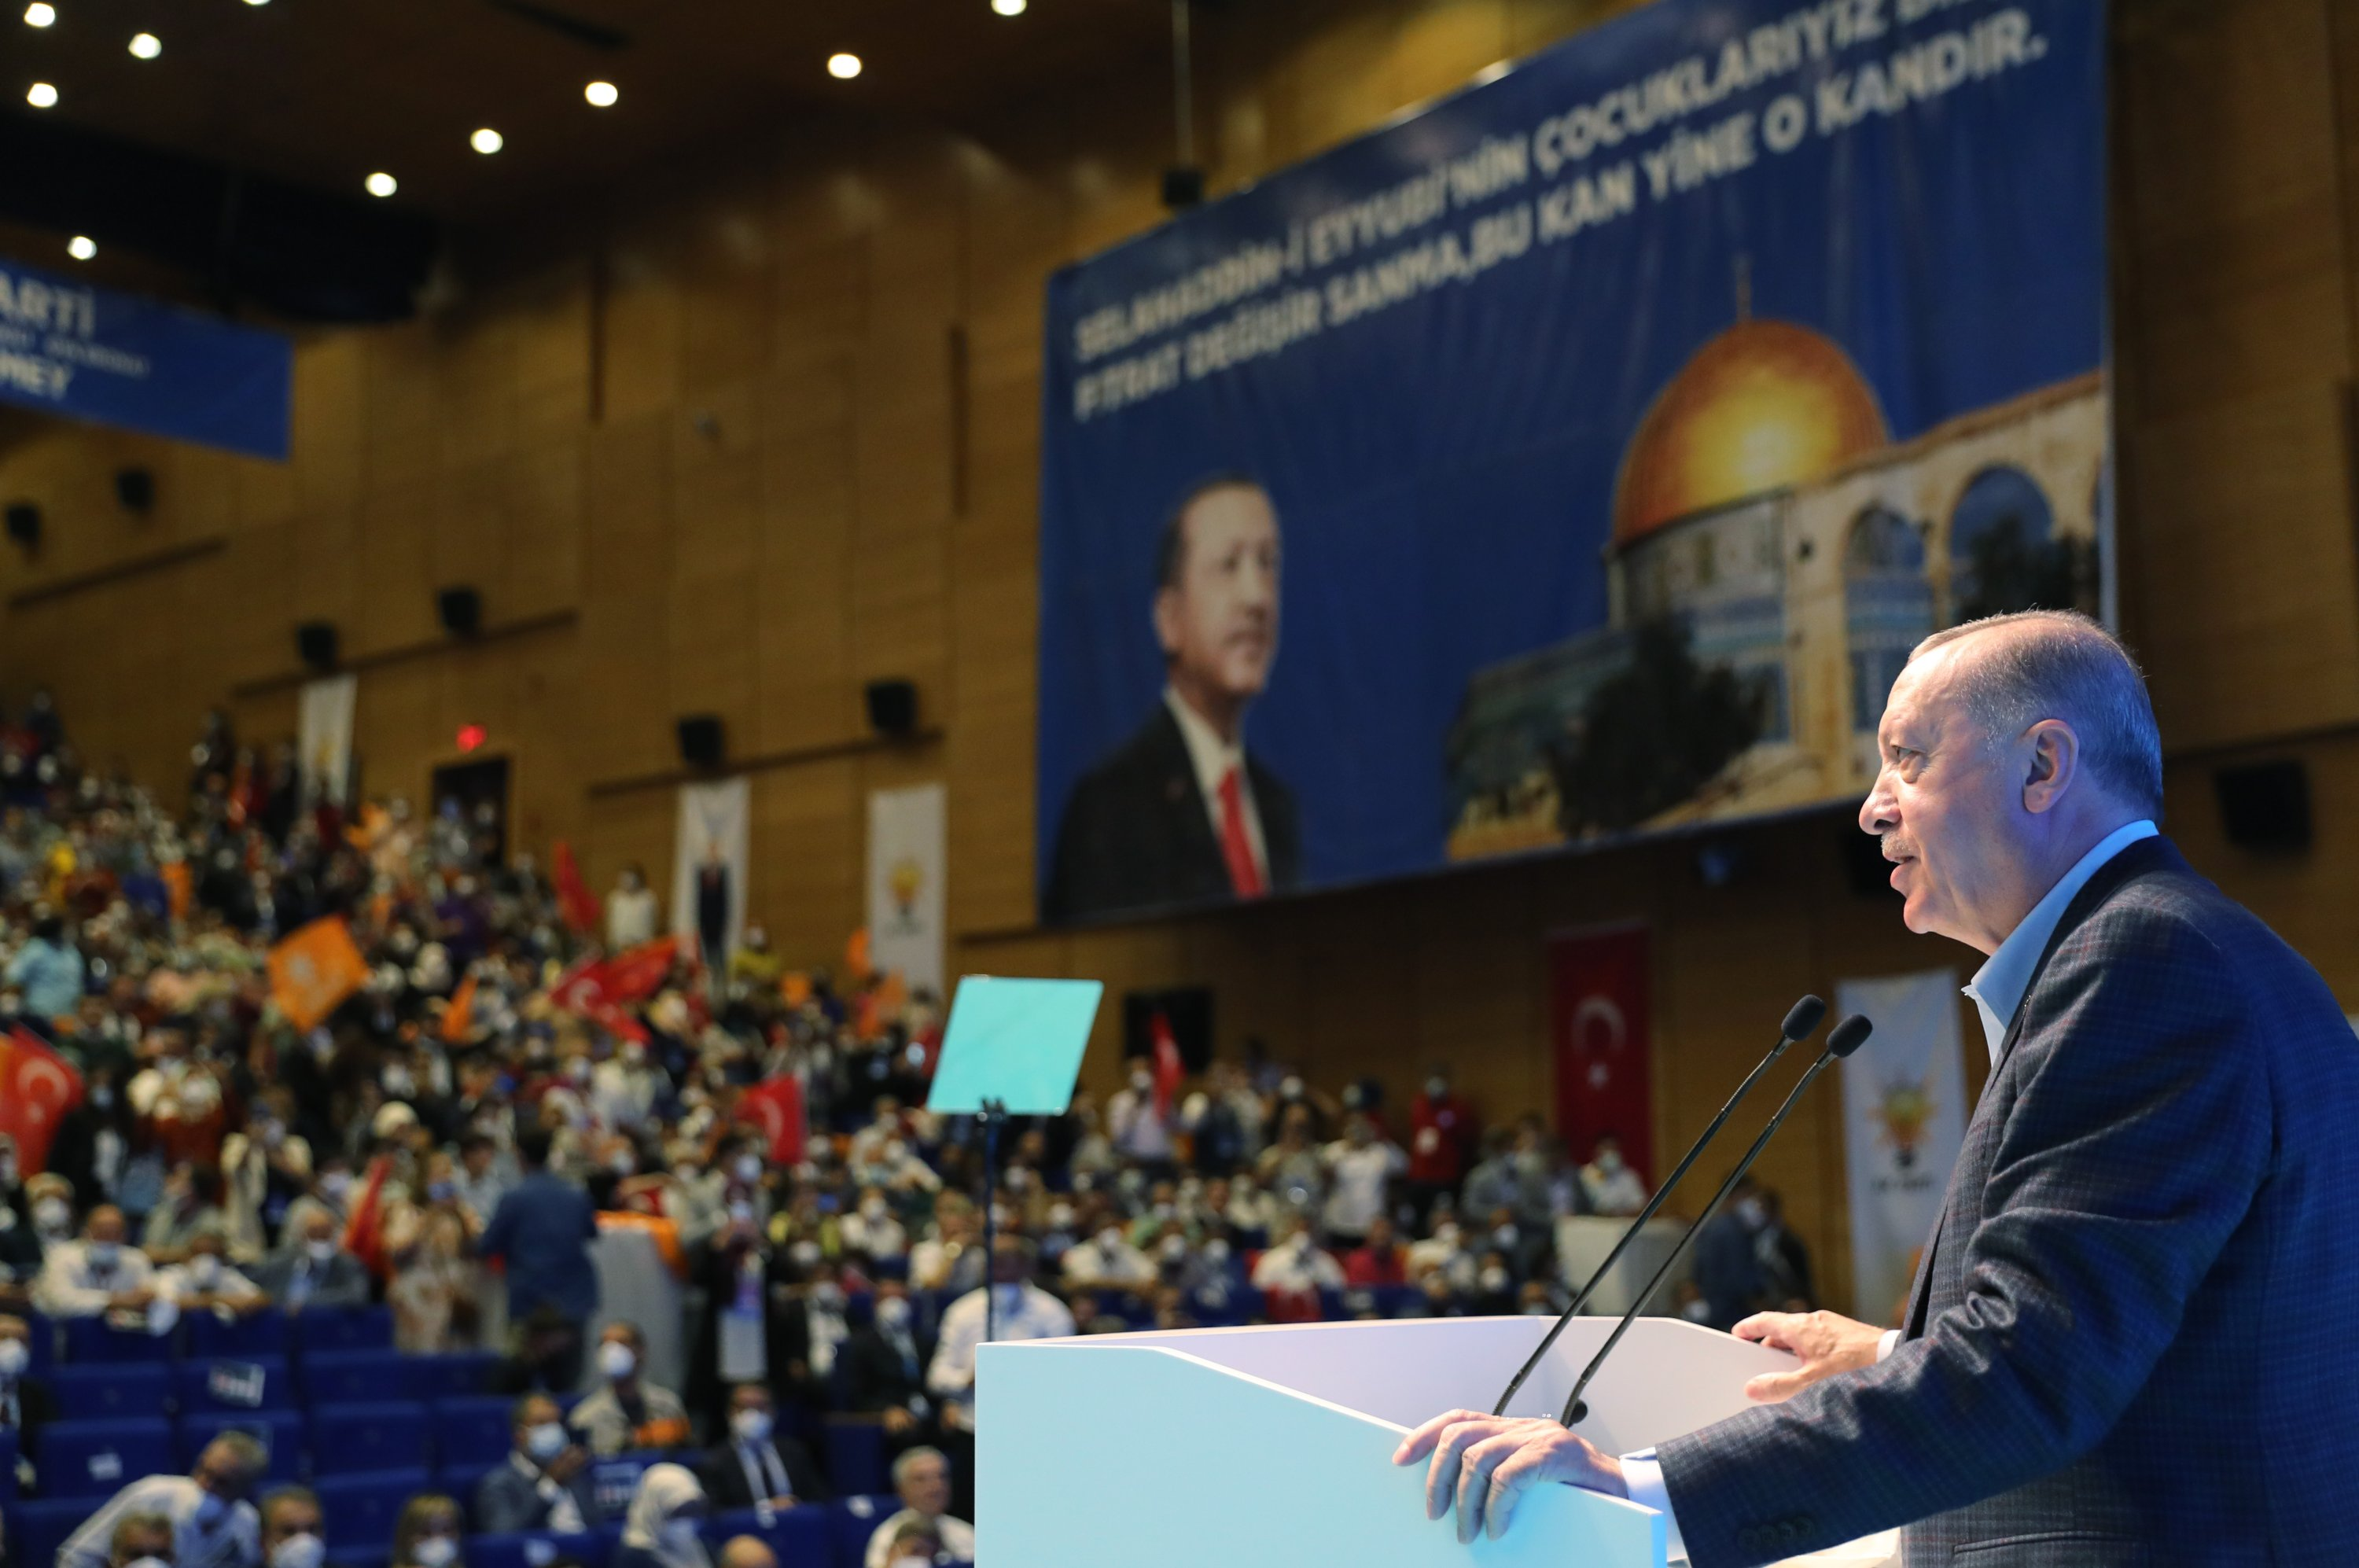 President Recep Tayyip Erdoğan addresses the ruling Justice and Development Party's (AK Party) extended consultation council meeting in the southeastern Diyarbakır province, Turkey, July 9, 2021. (AA Photo)